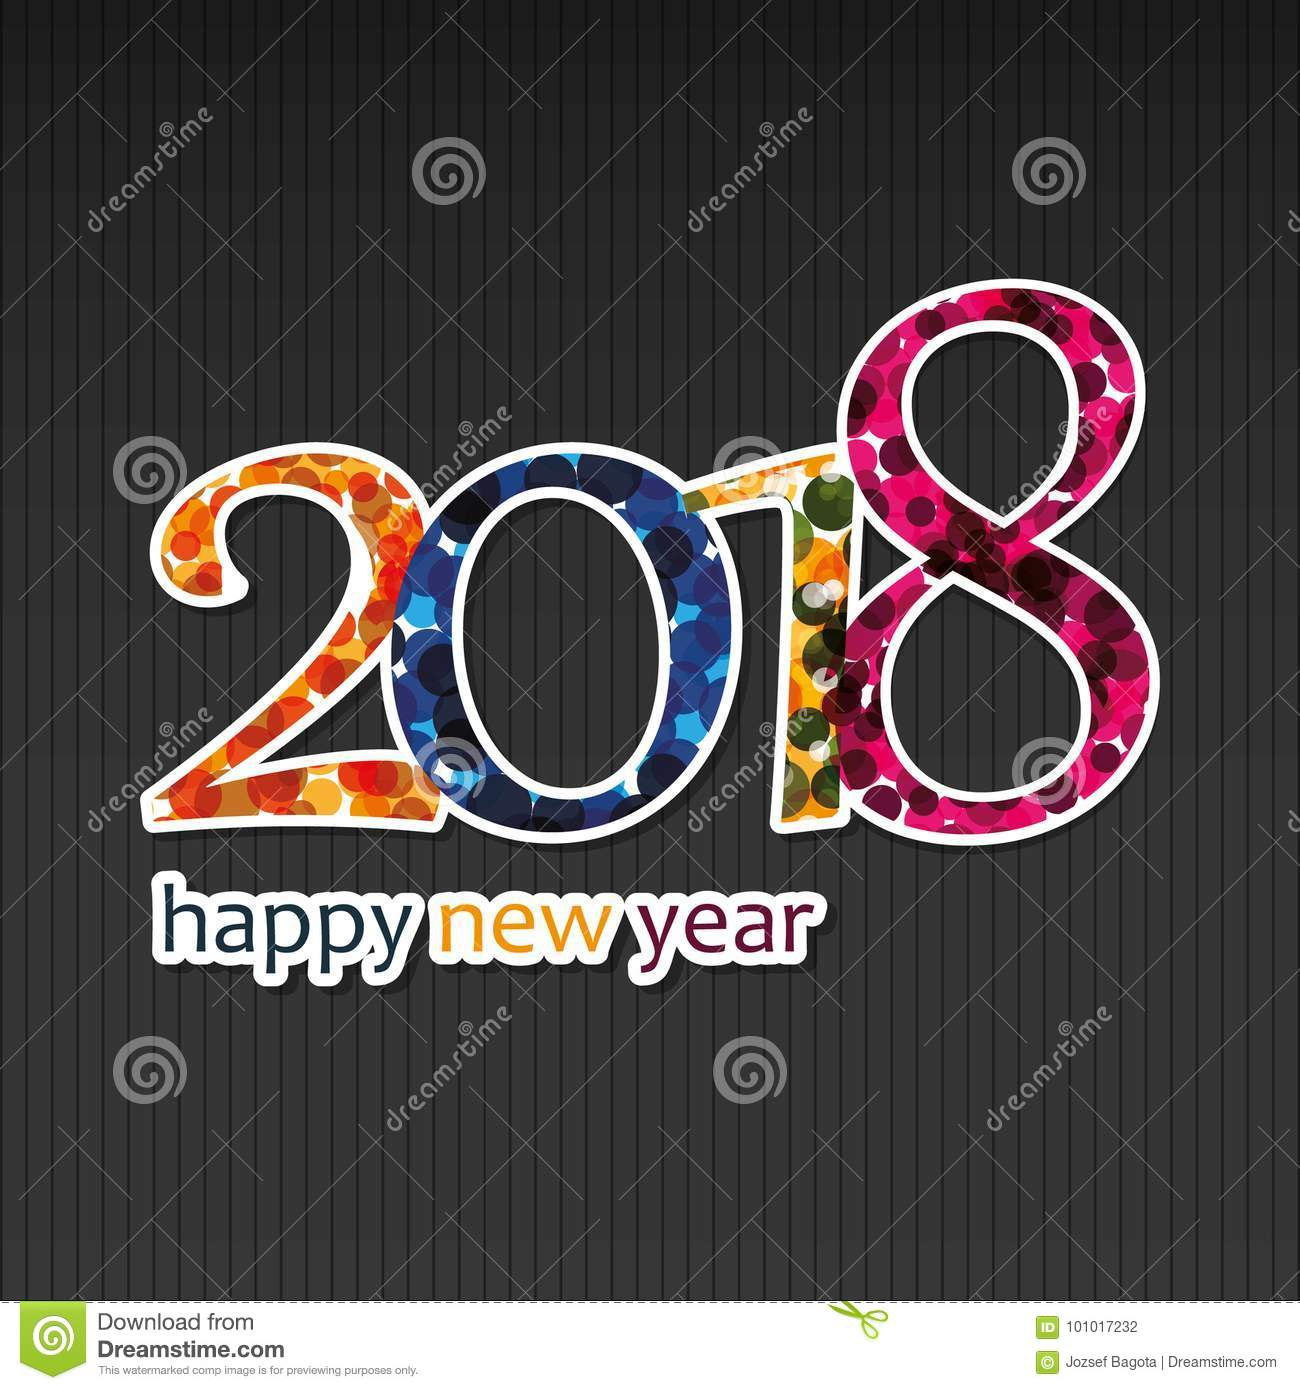 best wishes happy new year greeting card or background creative design template 2018